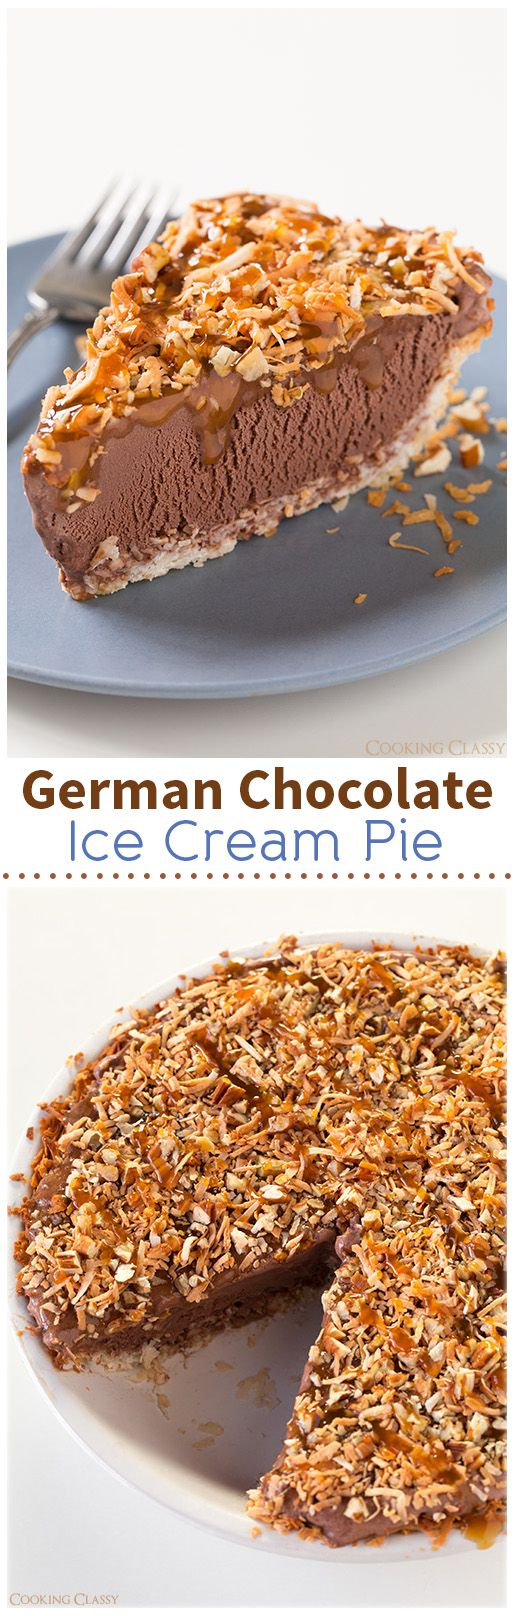 Ice cream pies, Chocolate ice cream and German chocolate on Pinterest